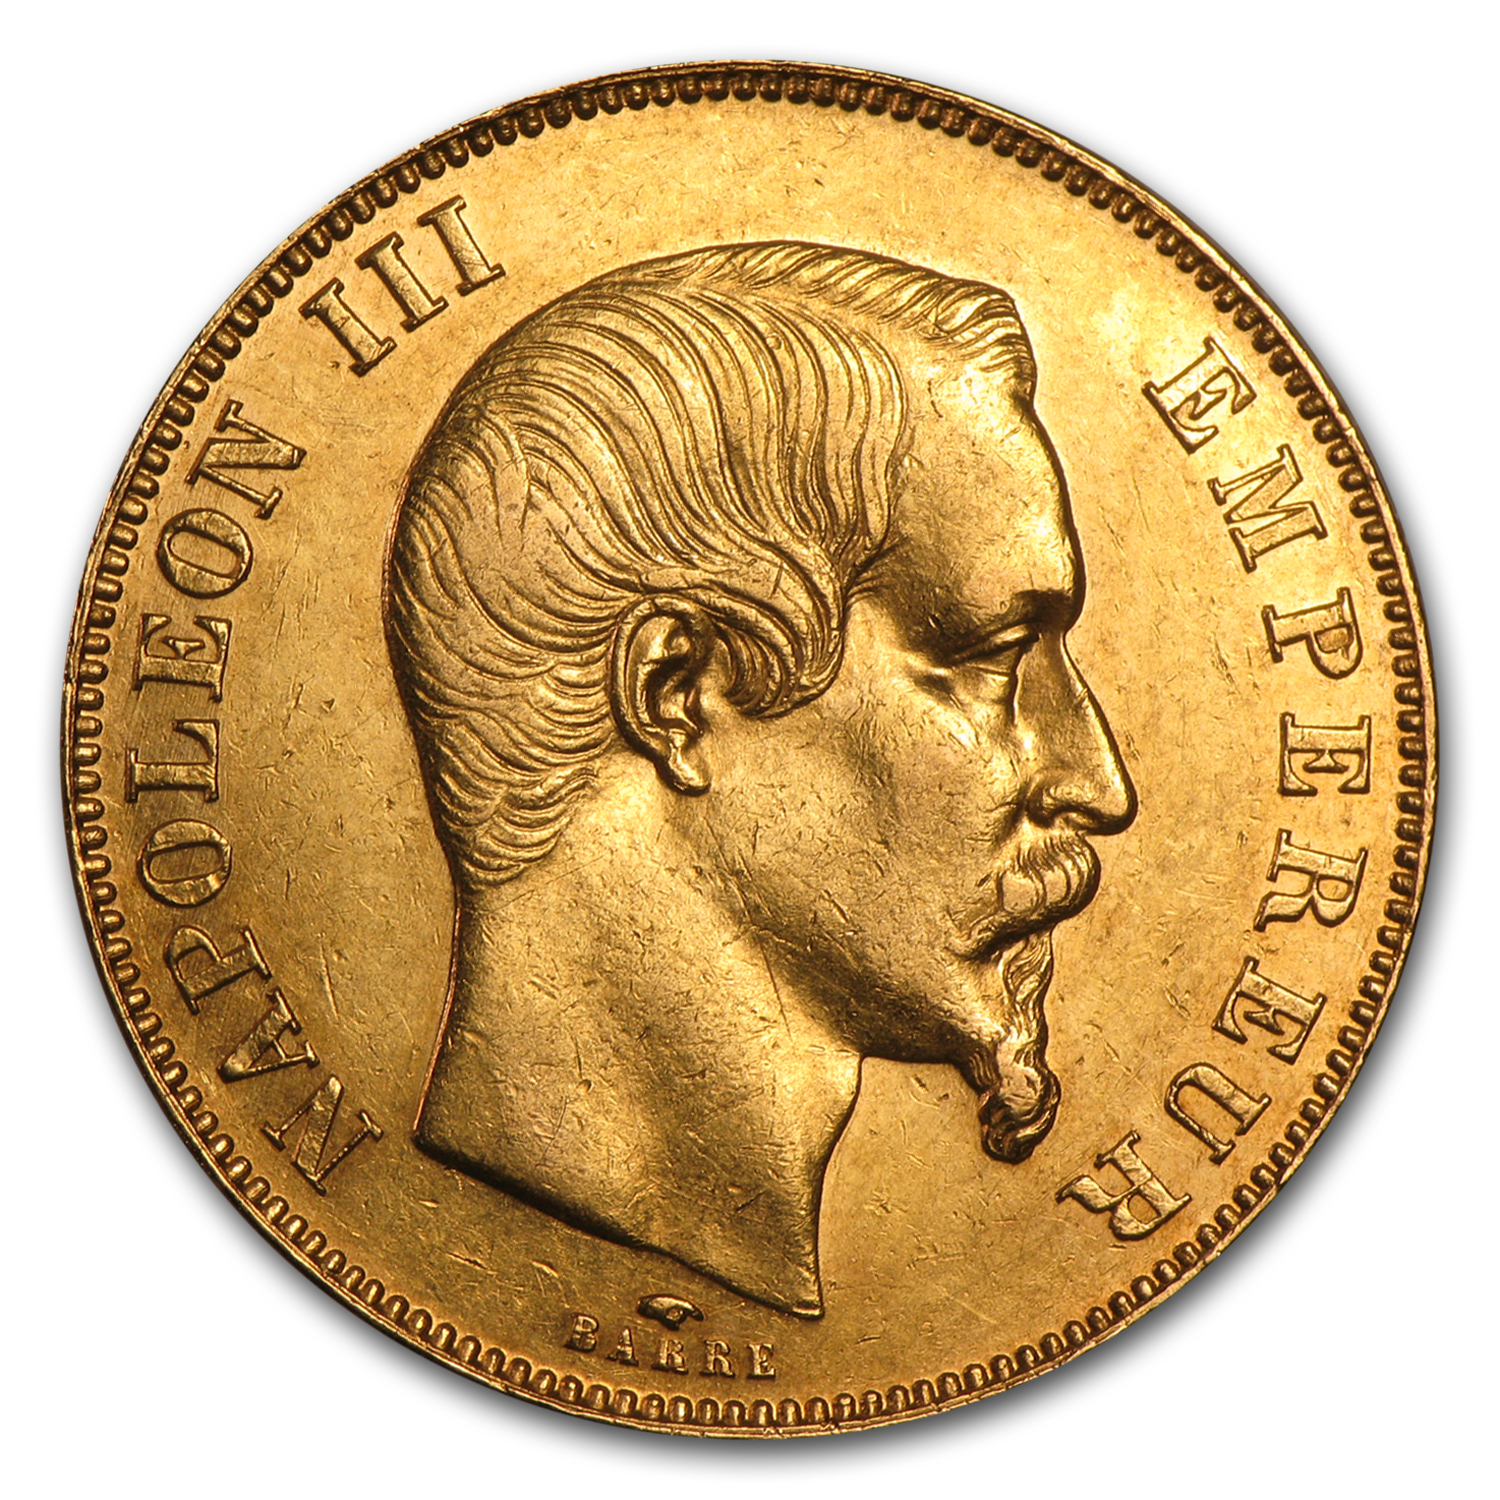 1855-1859 France Gold 50 Francs Napoleon III AU